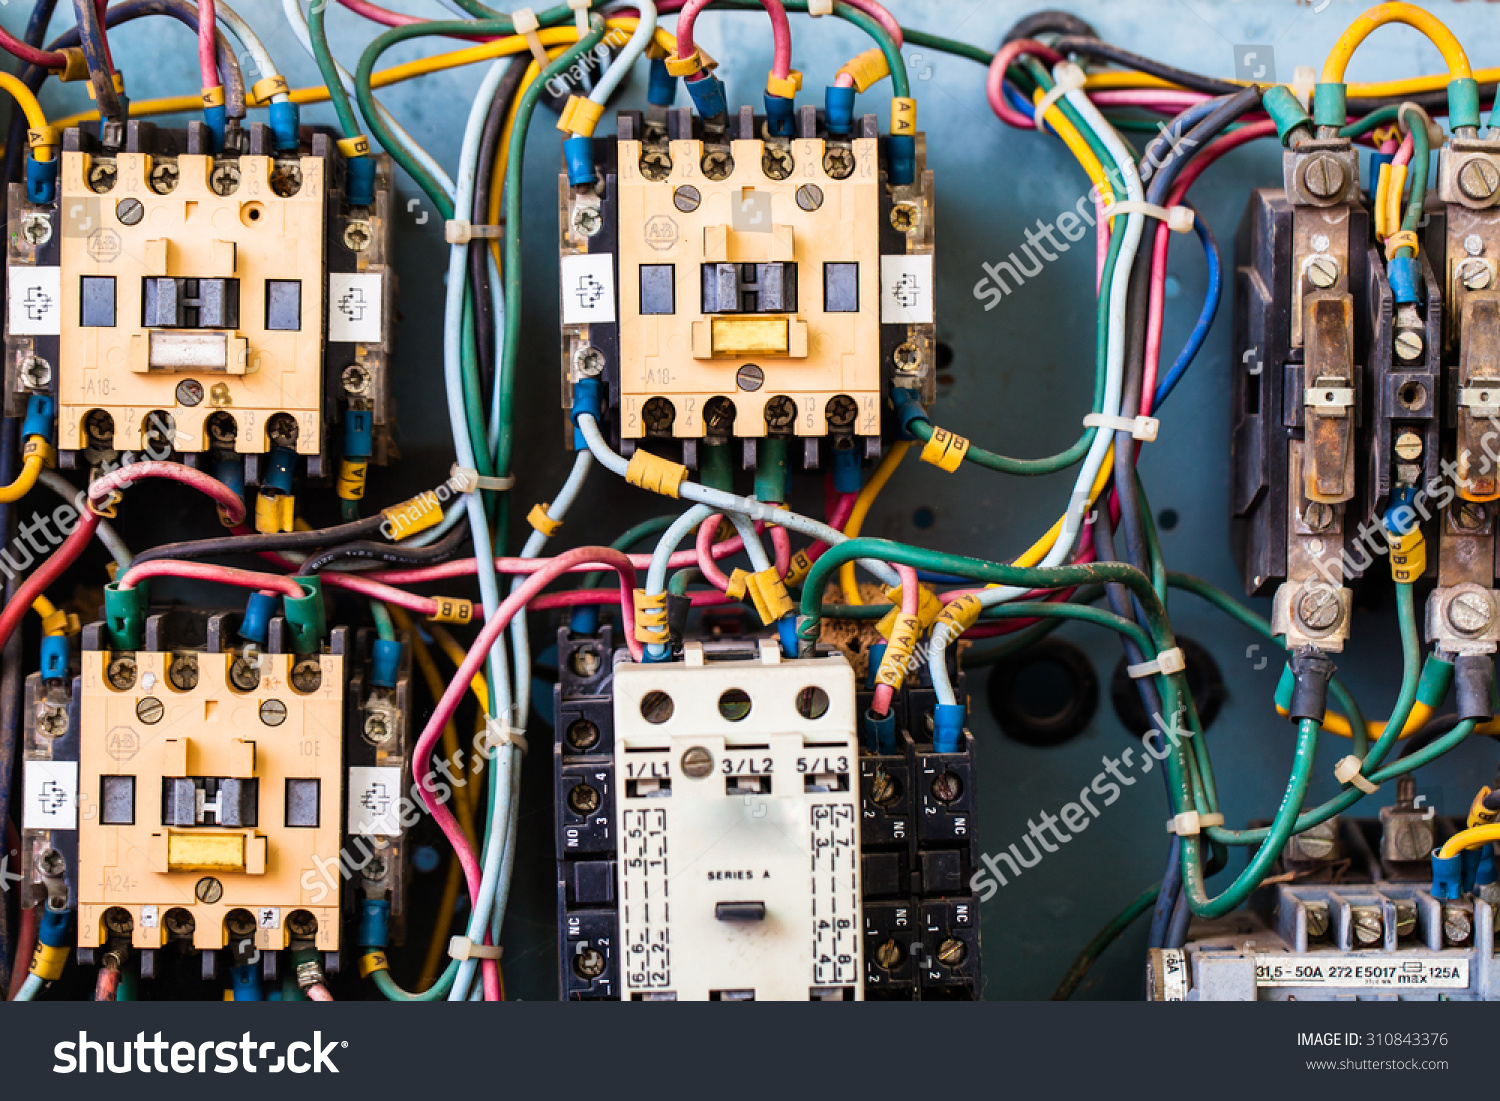 Electrical Circuits Stock Photo Edit Now 310843376 Shutterstock Electricity And